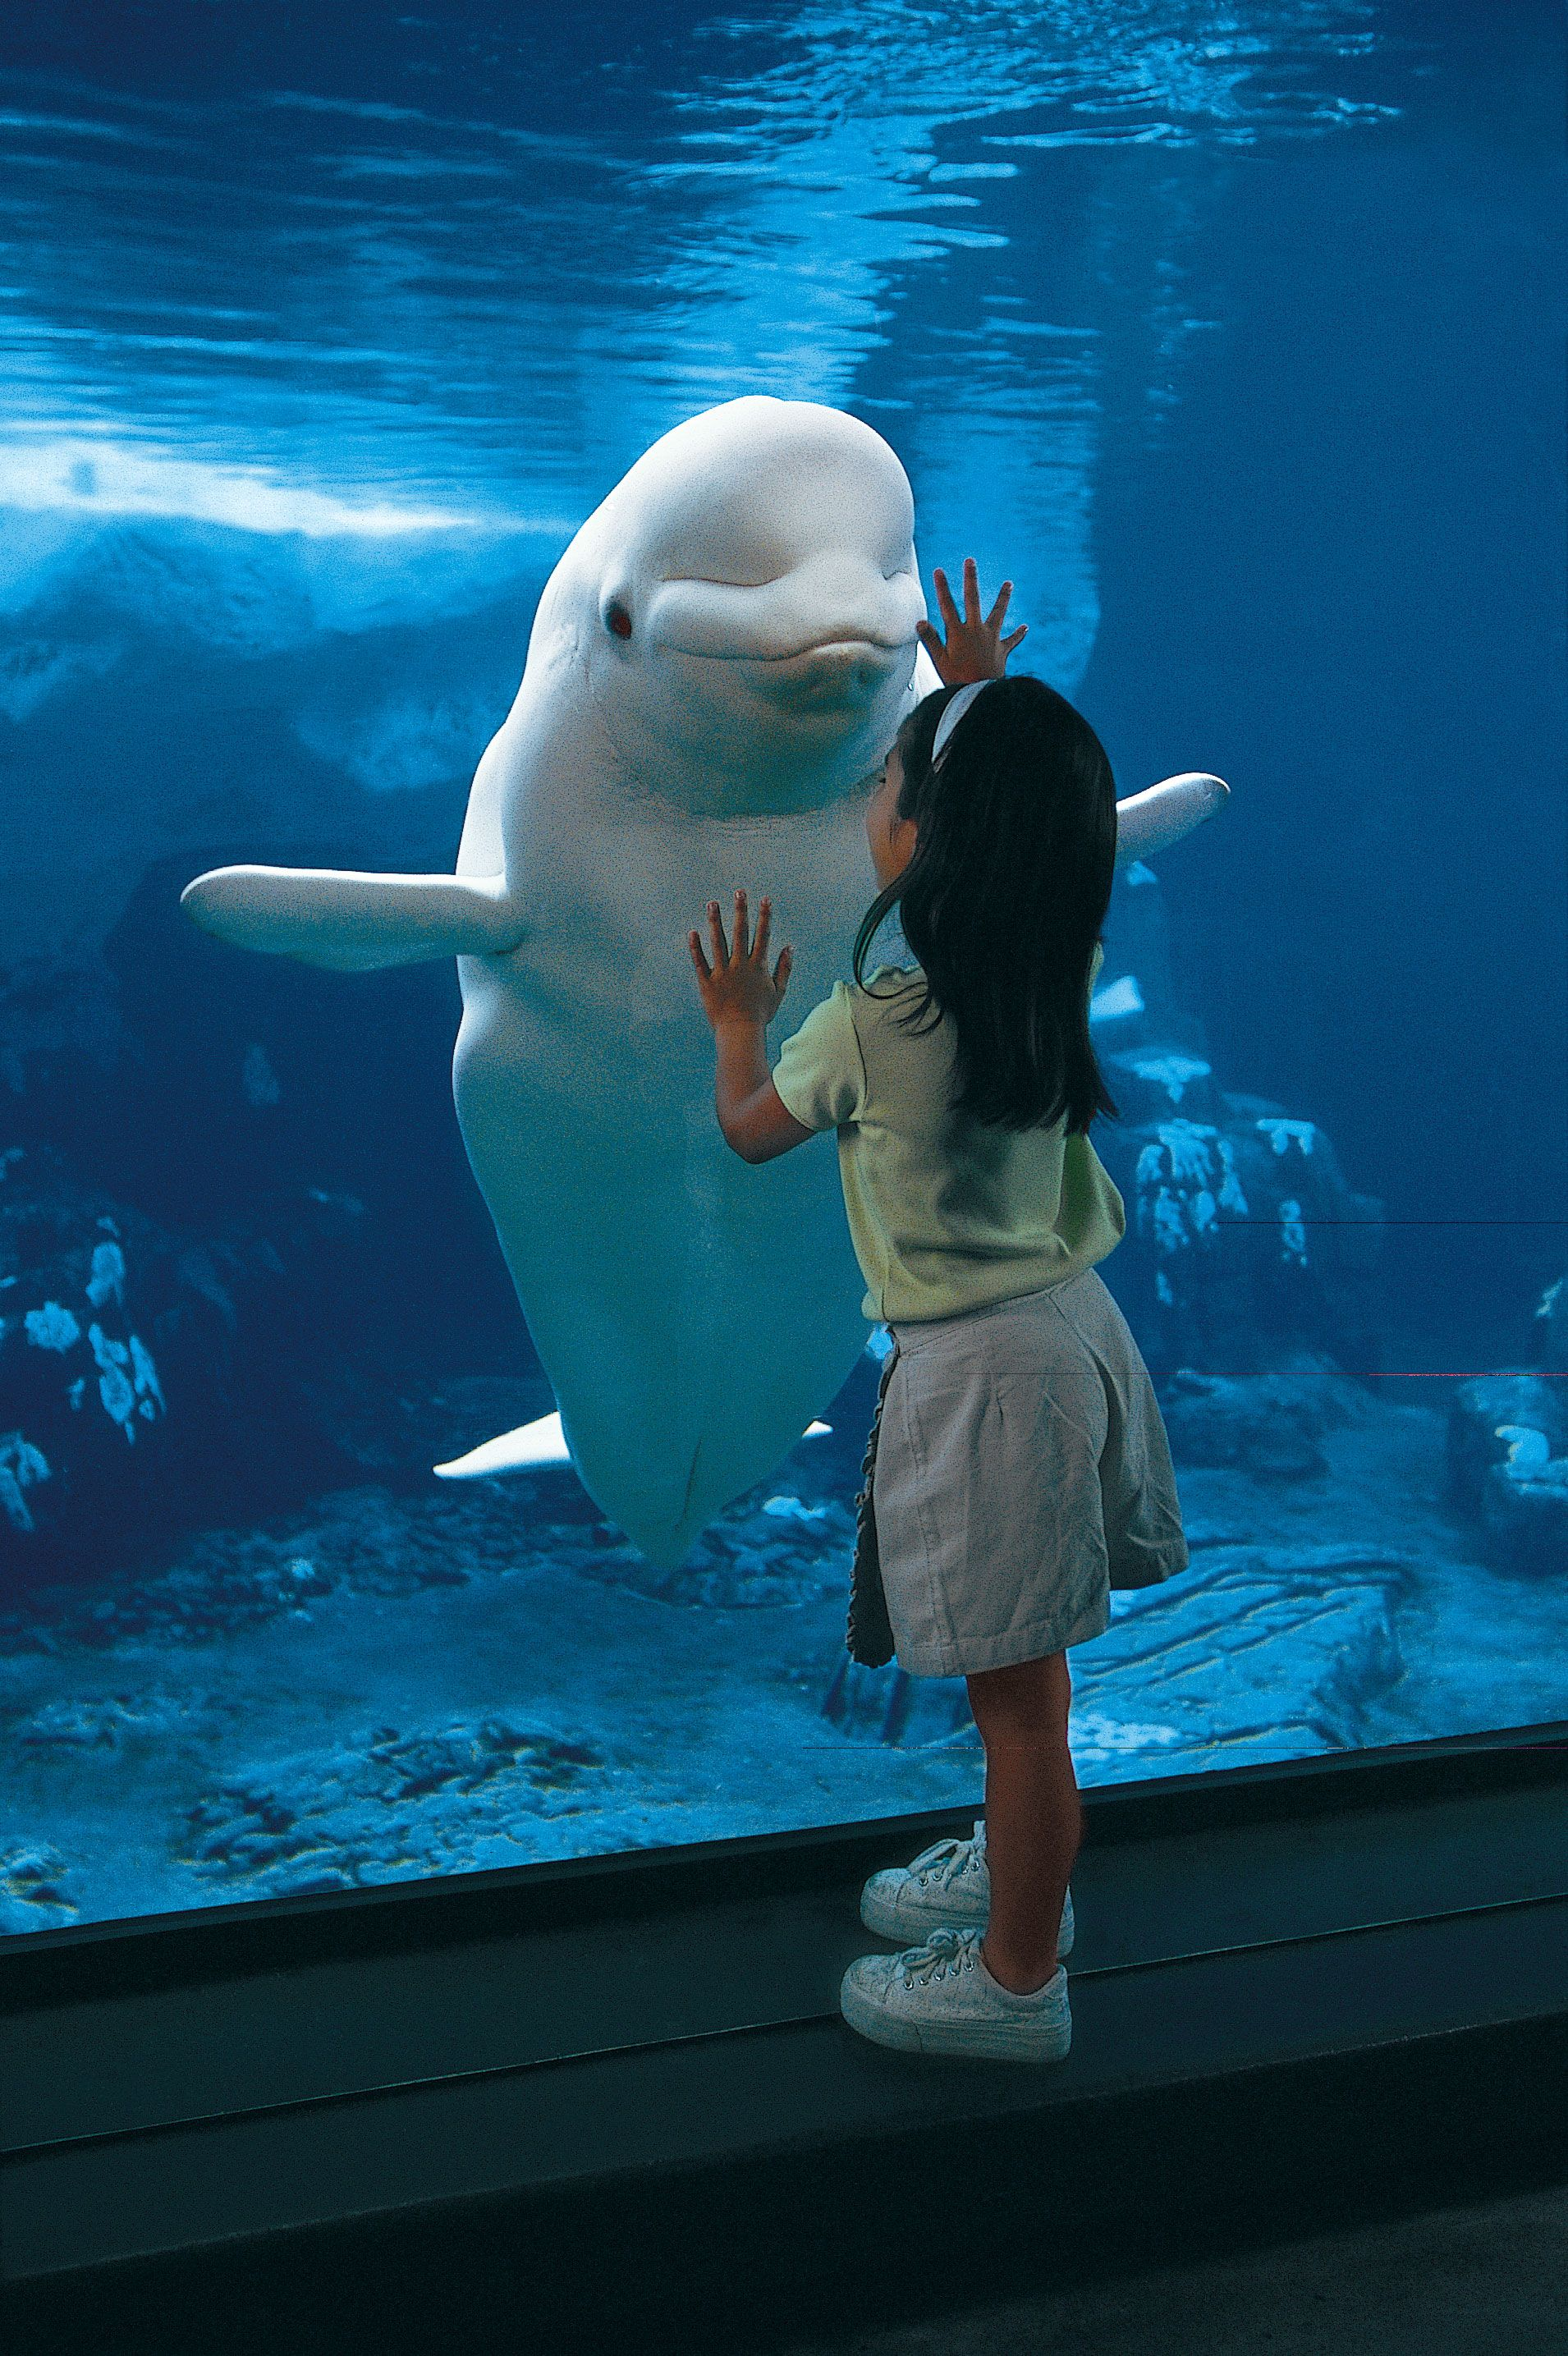 What a cute picture! Beluga whales can grow 10-15 feet long and ...